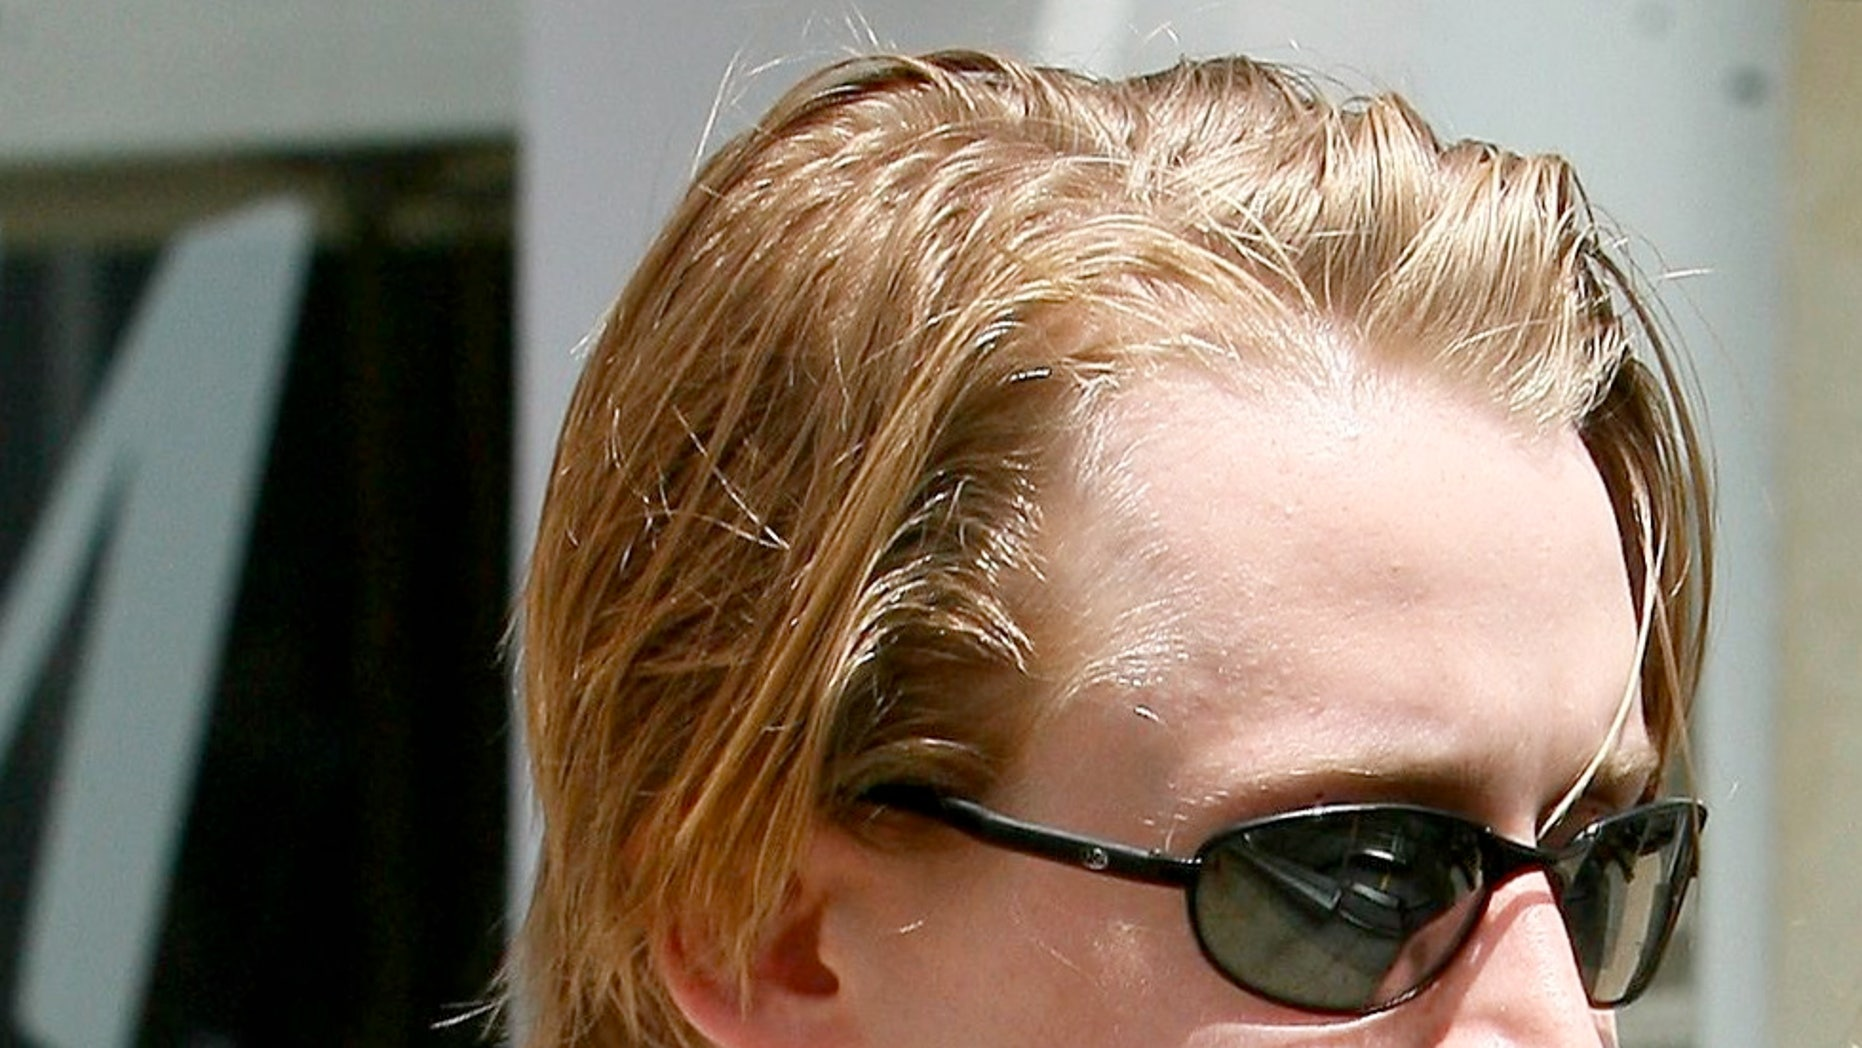 May 13, 2009. Macaulay Culkin in Los Angeles.